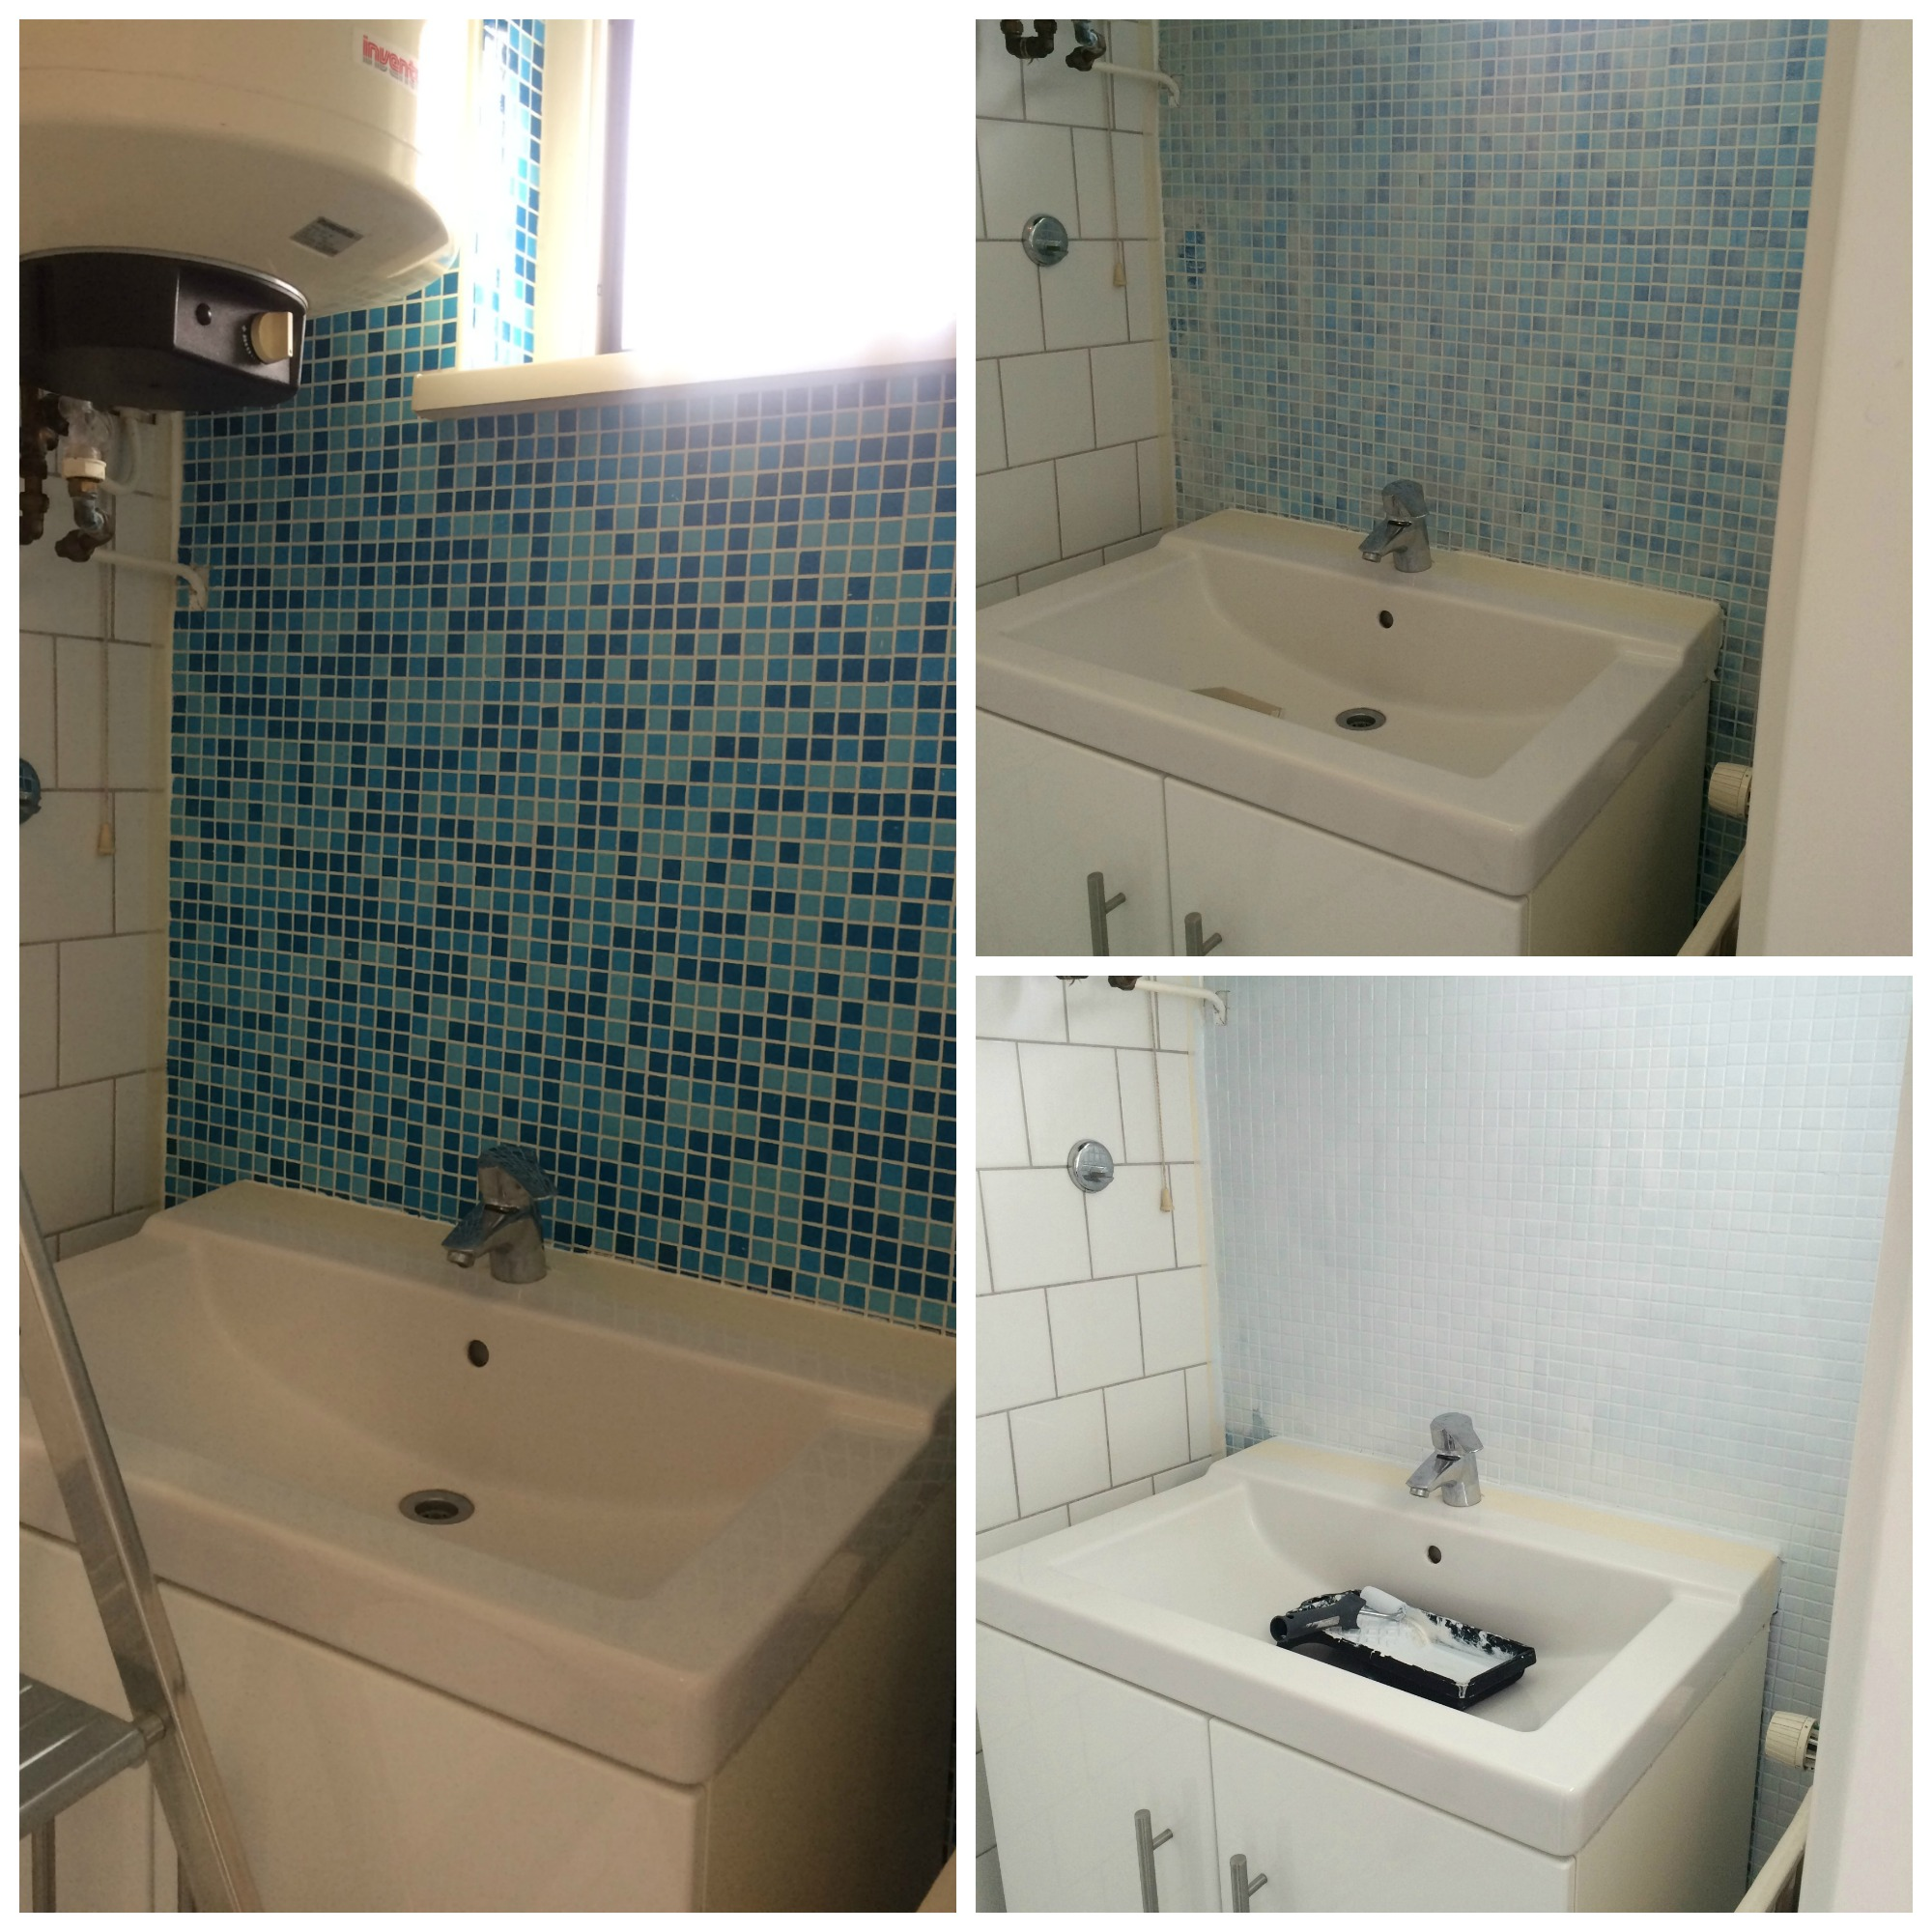 April recap: bathroom renovation collage - http://weirdatheart.com/april-recap/